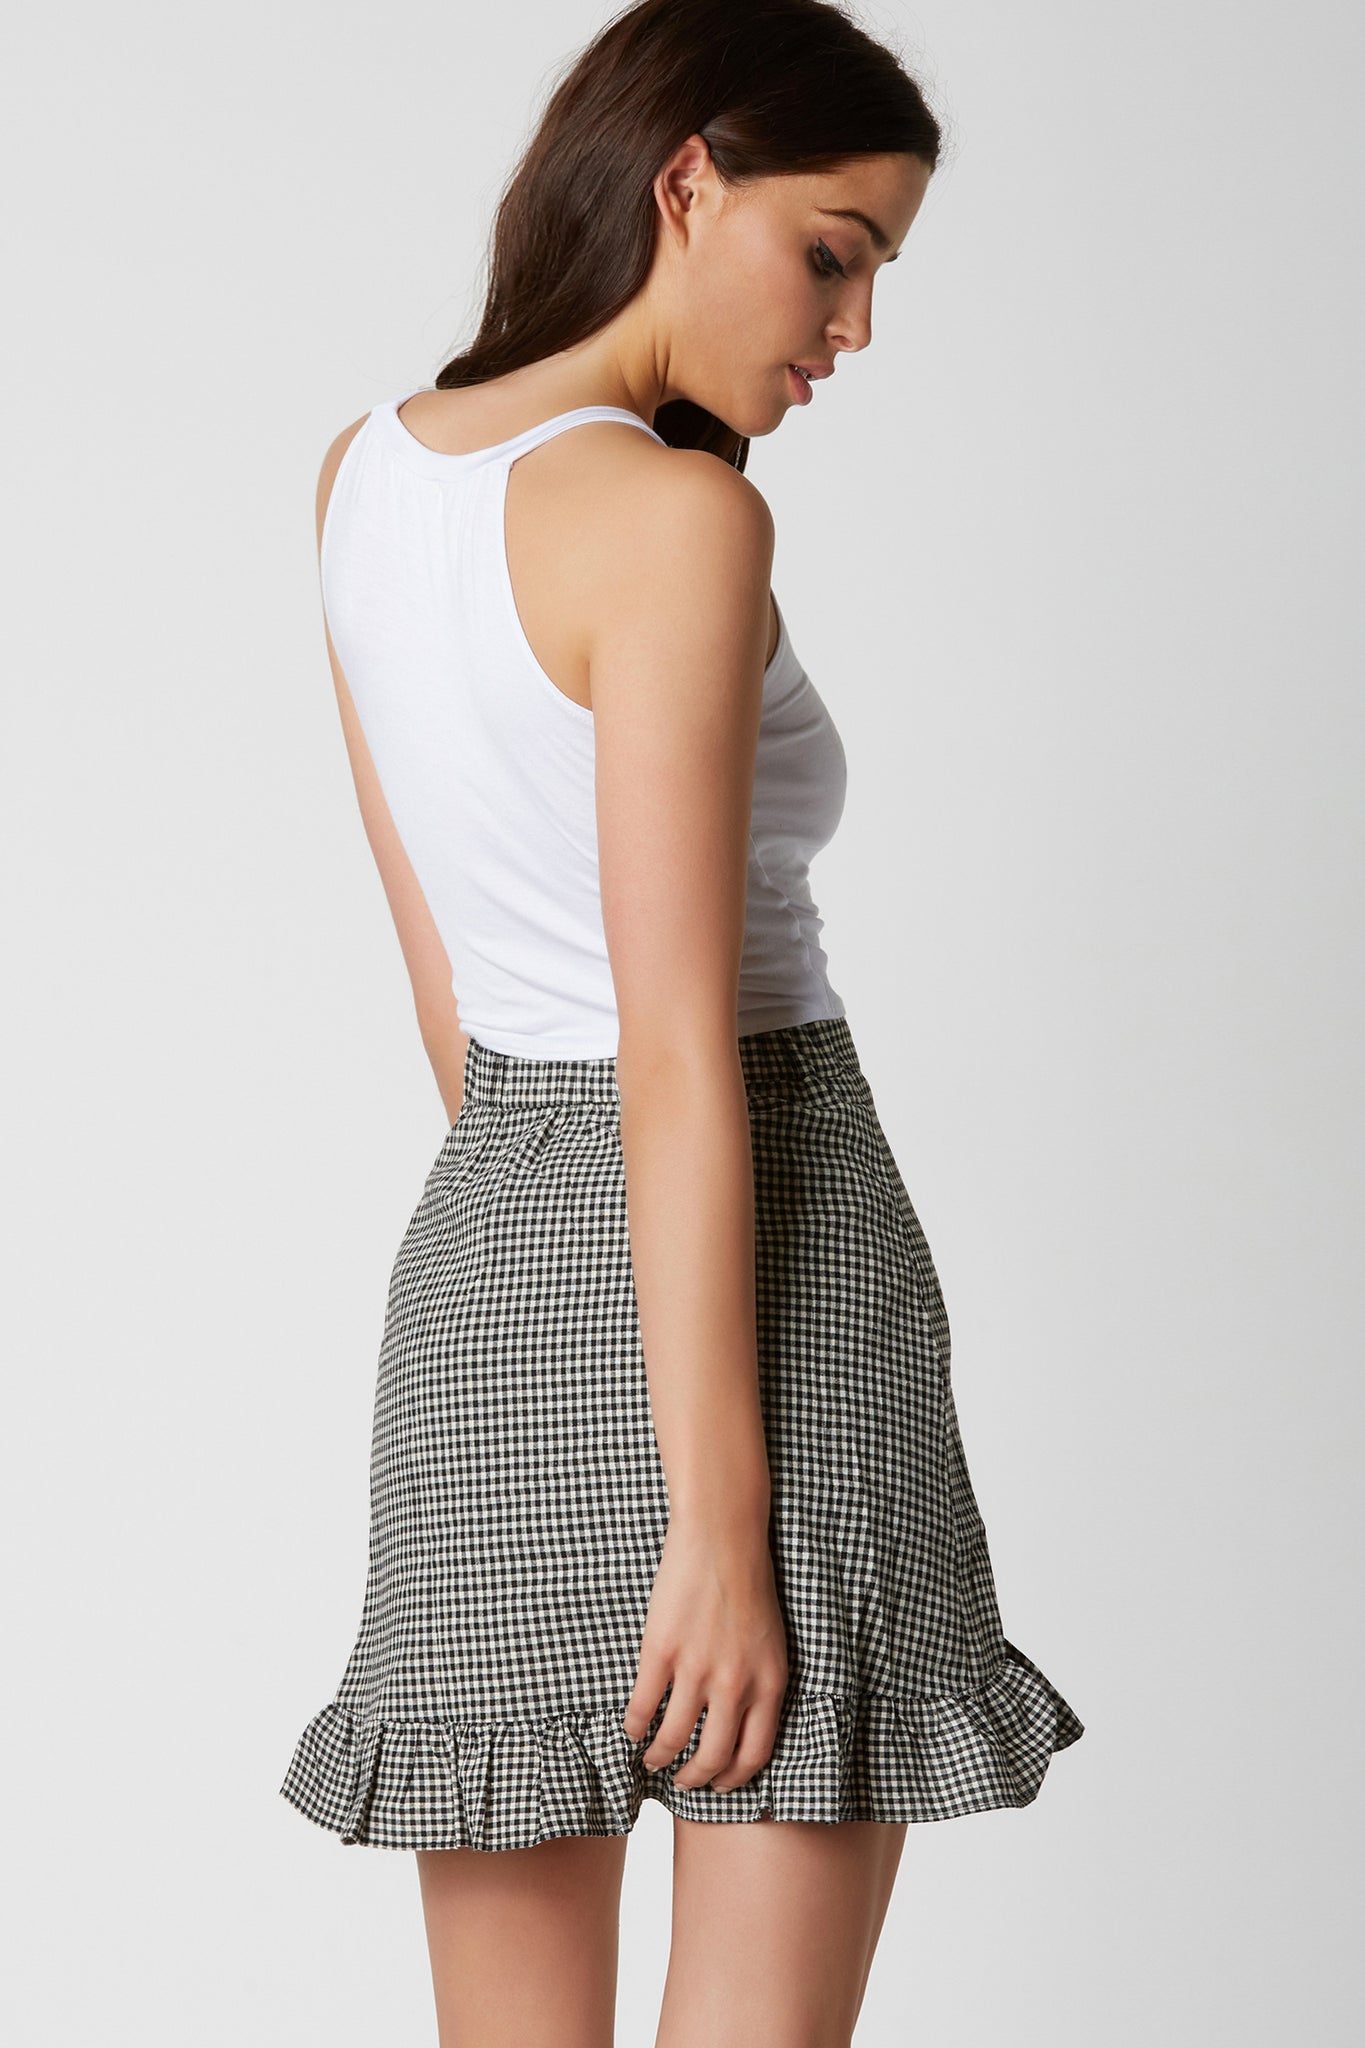 Casual round neck sleeveless top made of soft jersey material. Flirty graphic in front with cropped hem finish.